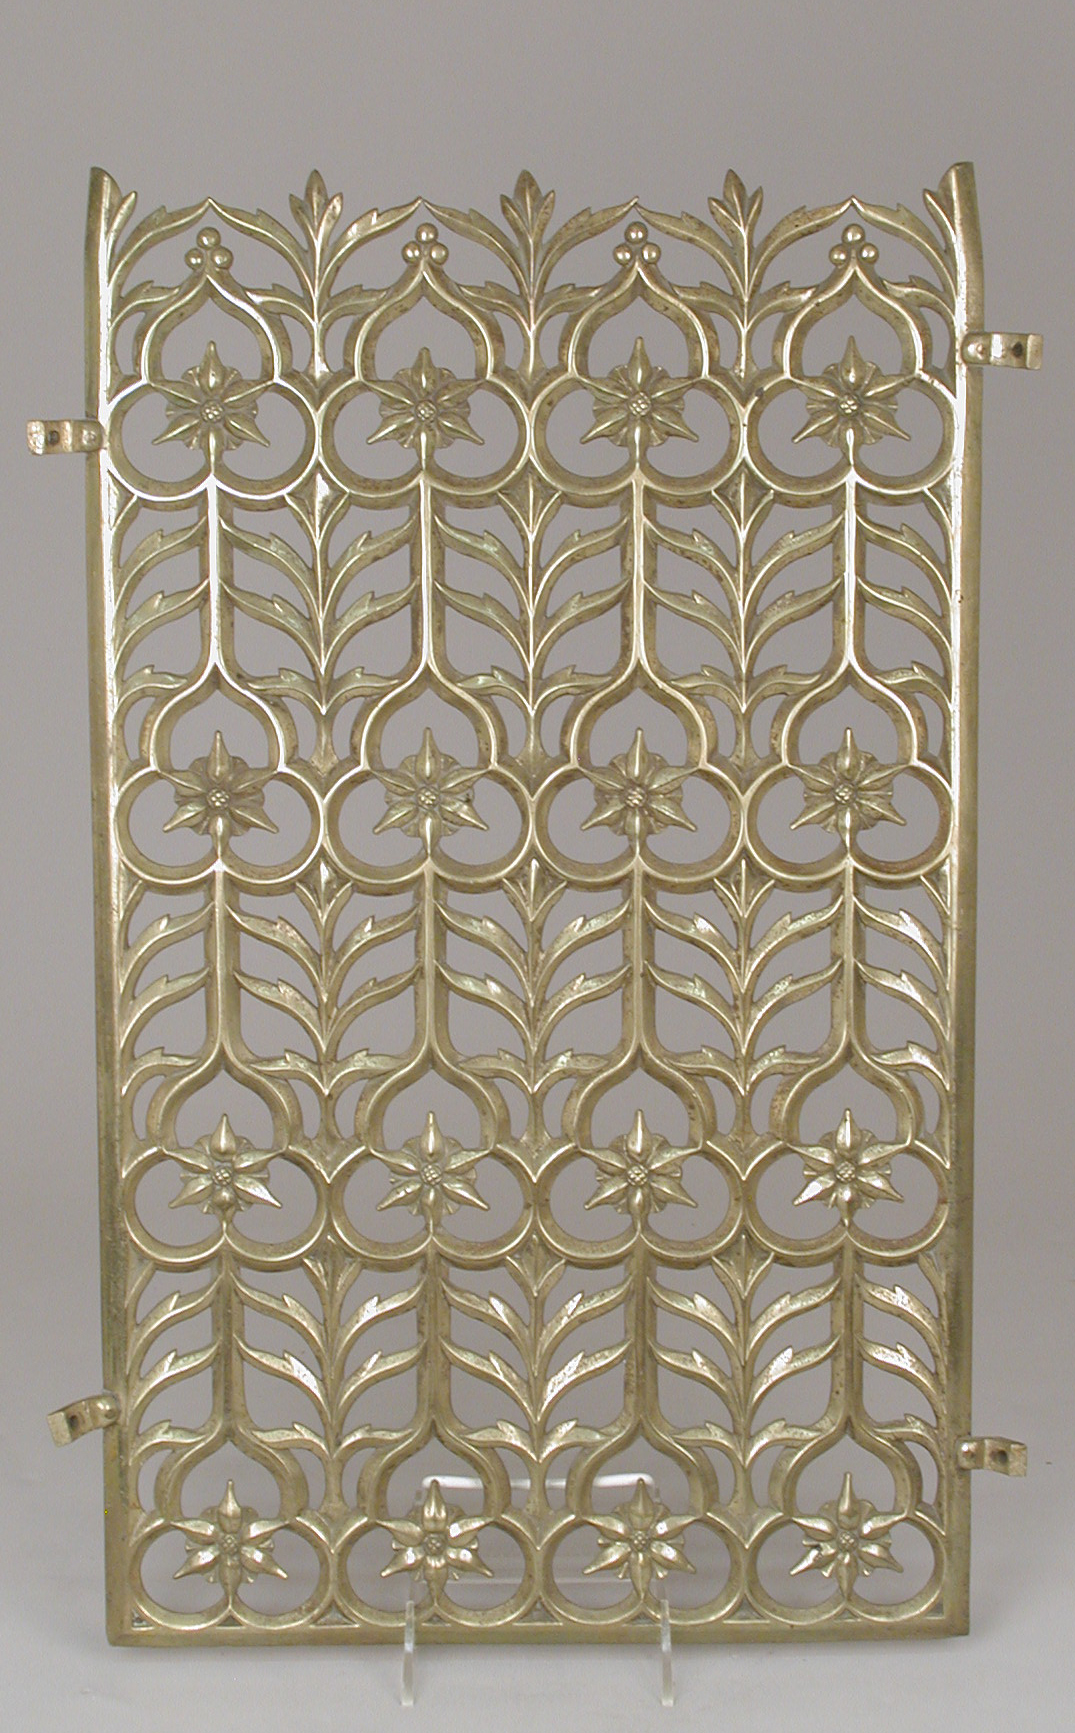 File Decorative Grill From The Palace Of Westminster Met Sf2015  # Augustus Pugin Muebles